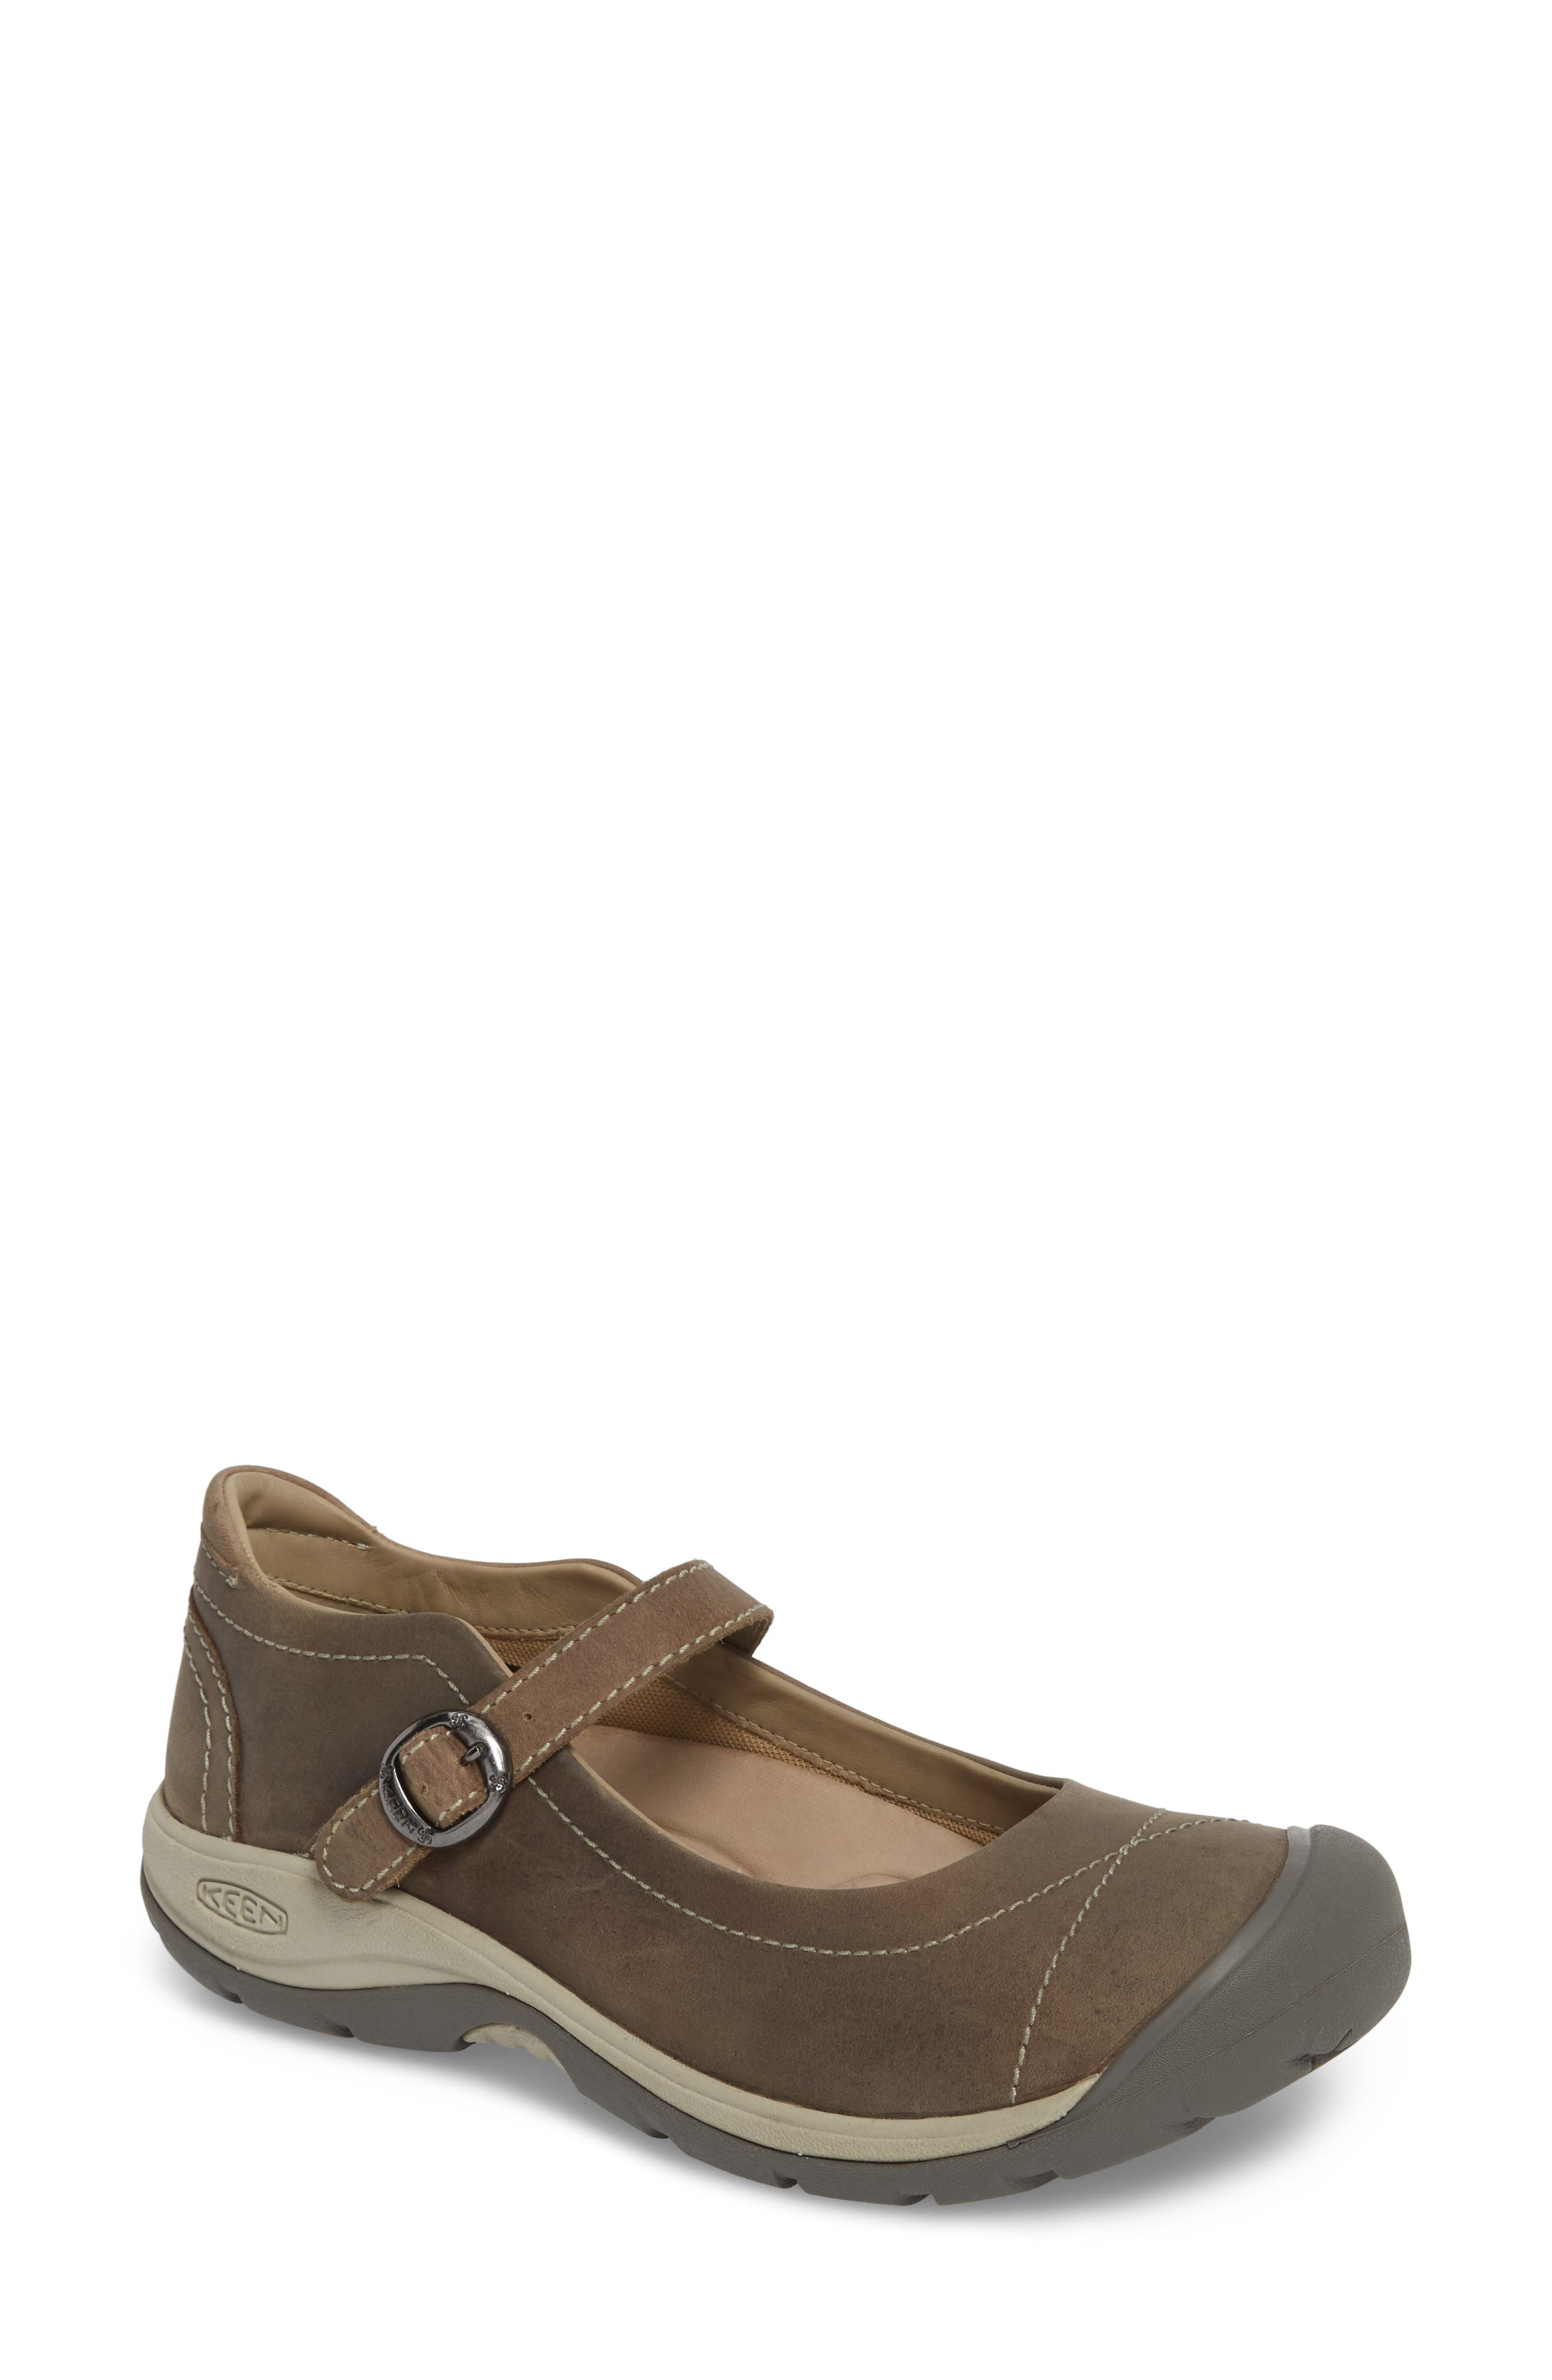 KEEN Presidio II Mary Jane Flat, Main, color, PALOMA/ SILVER BIRCH LEATHER